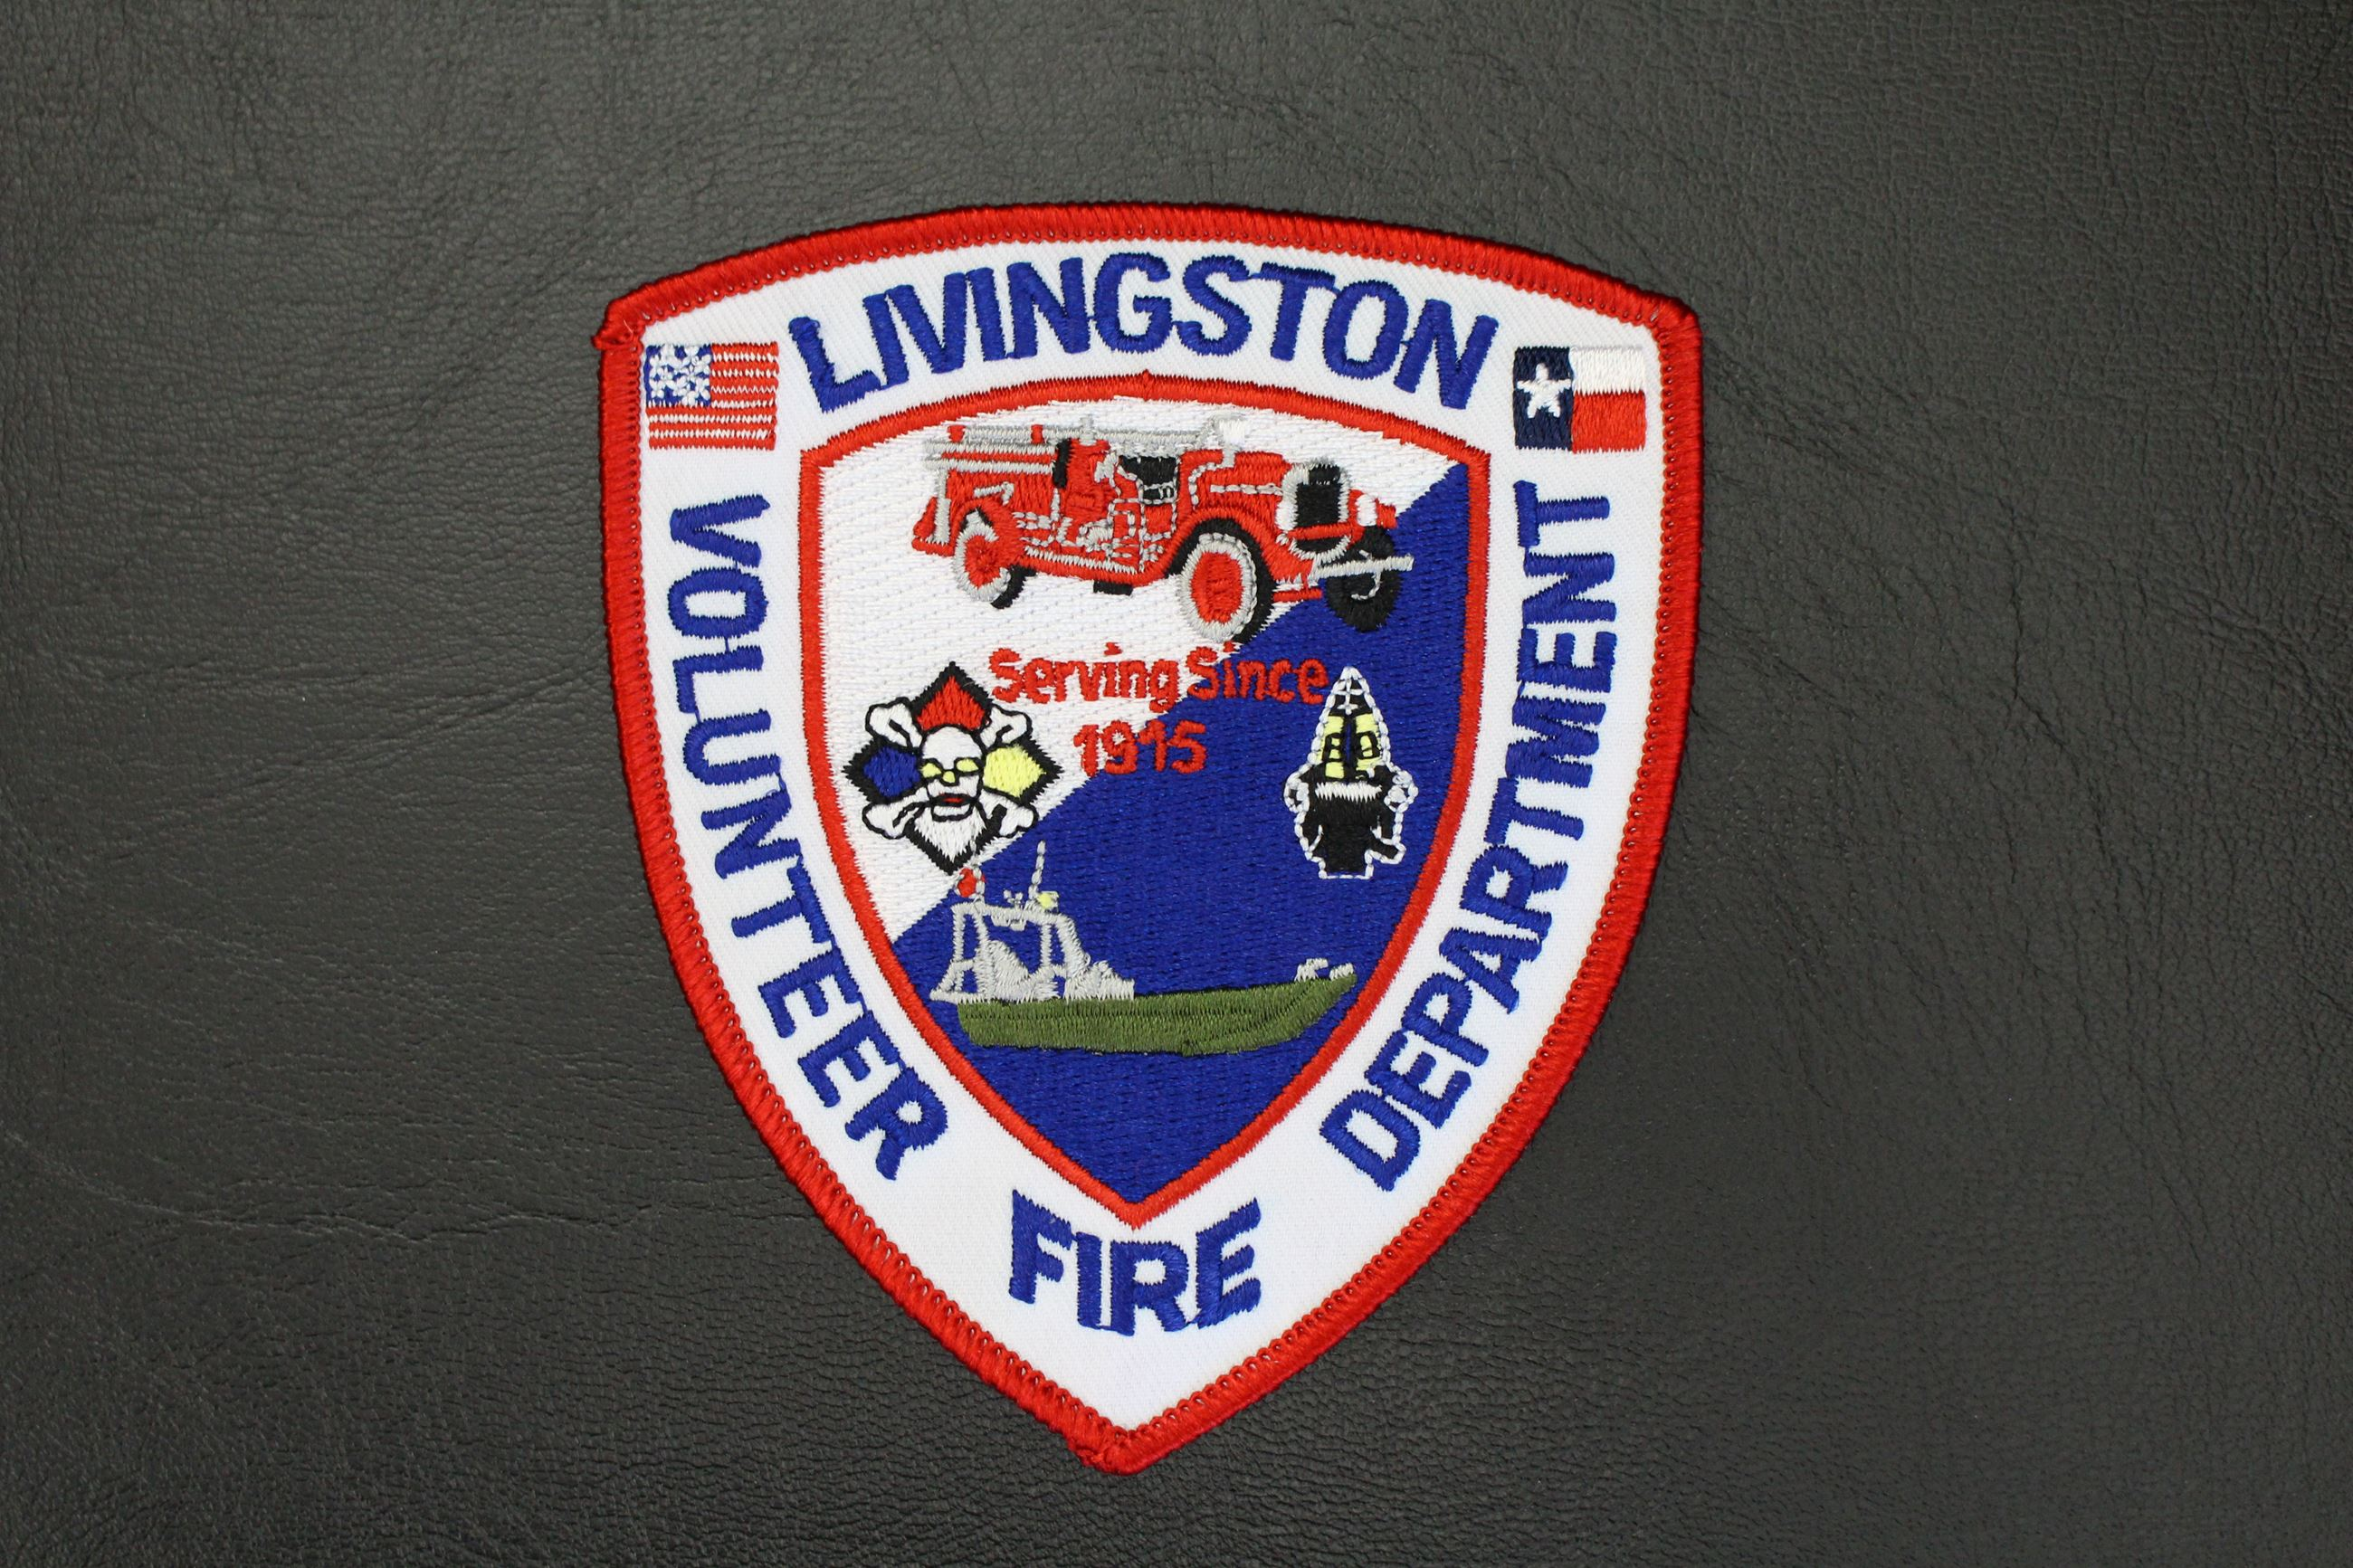 Livingston Volunteer Fire Department